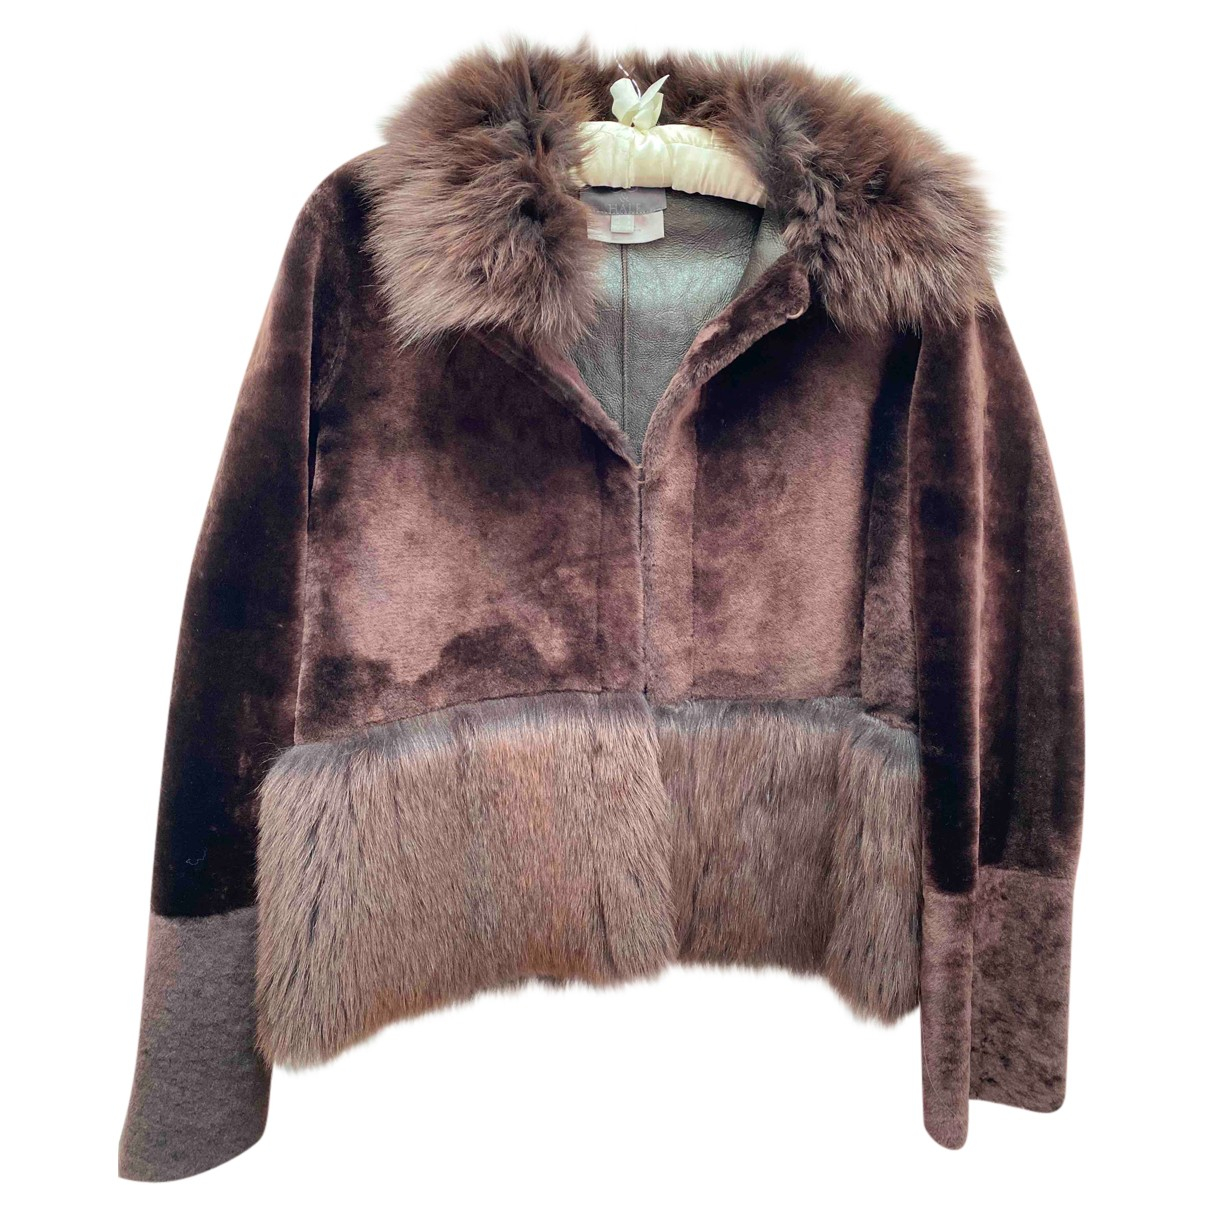 88 & Half N Brown Fur jacket for Women 8 UK